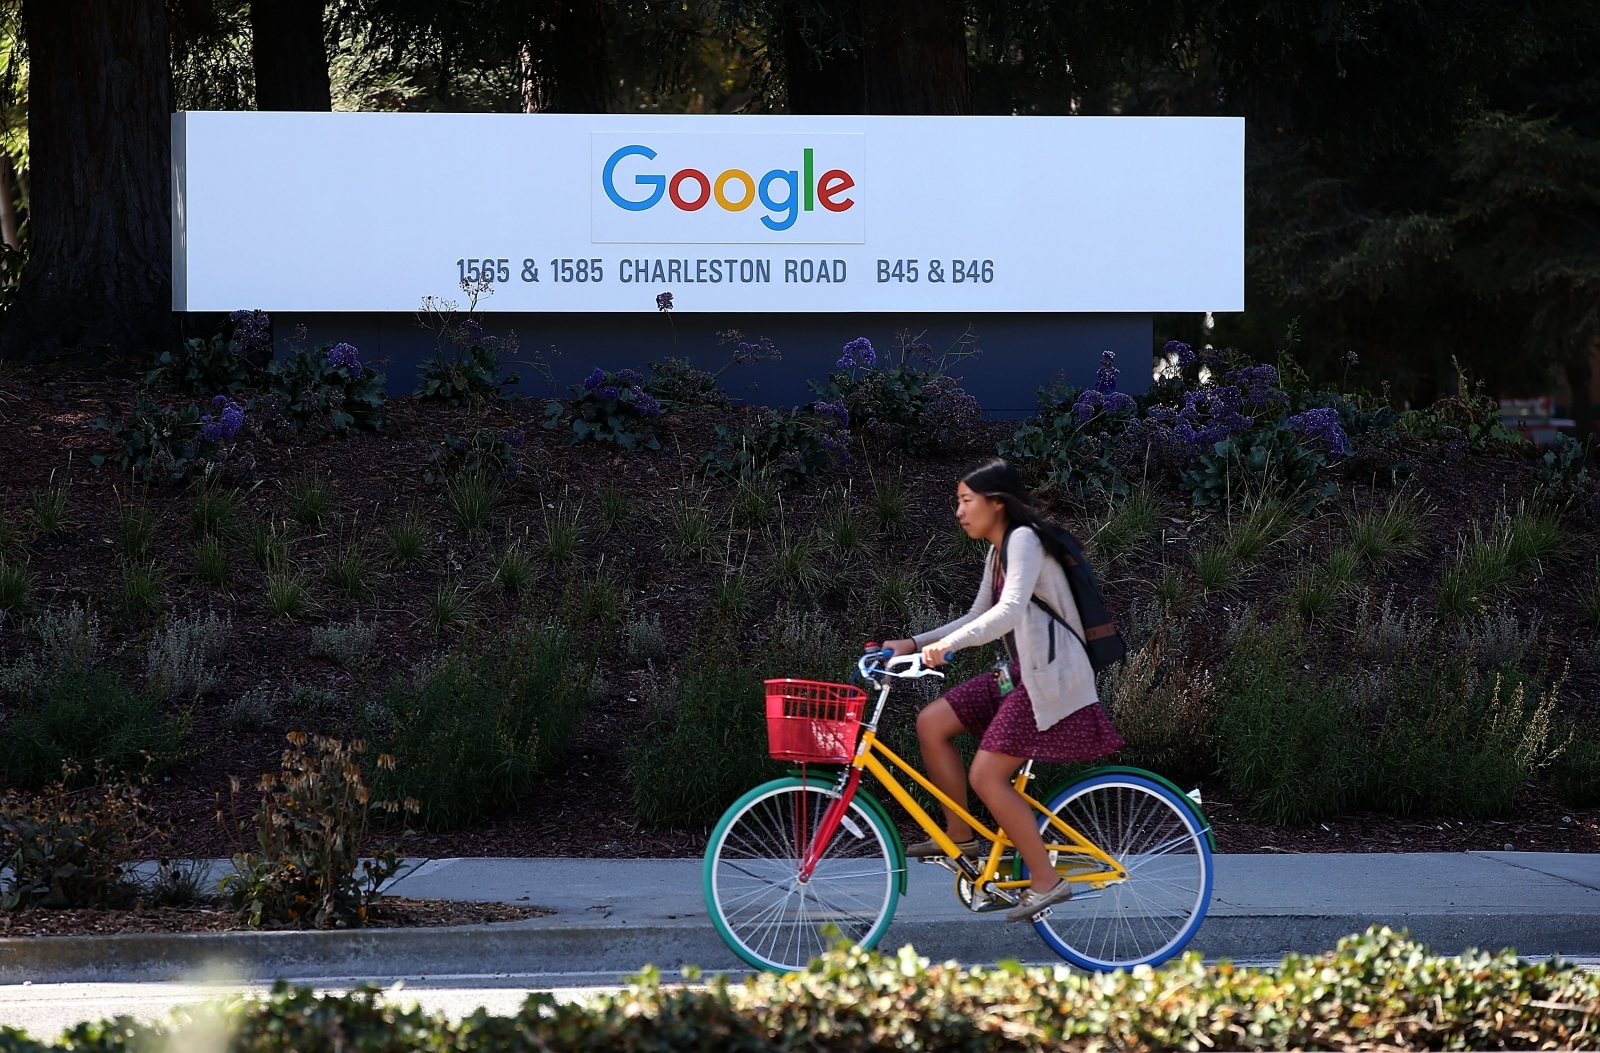 Trolls force Google to cancel gender memo meeting